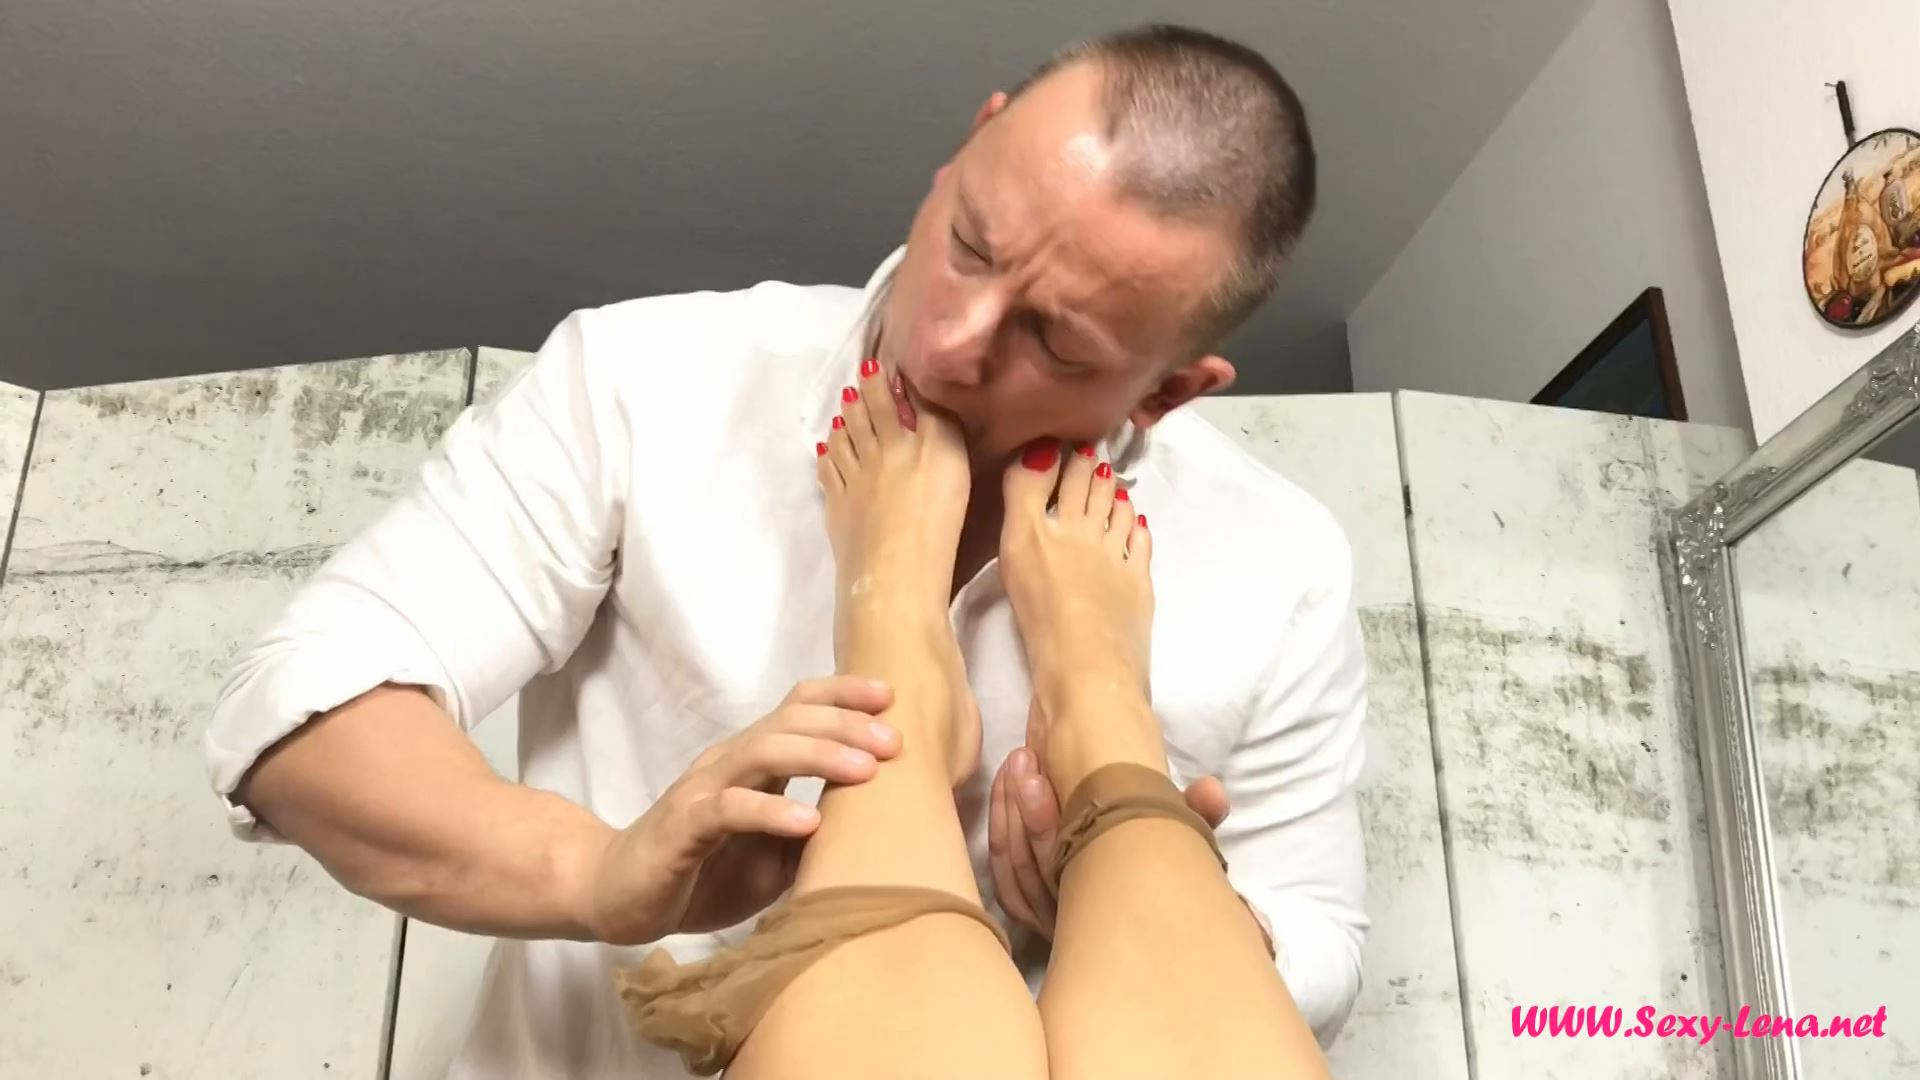 Fetish Model Lena In Scene: This Shoes and Feet are Delicious - SEXY LENA VIP - FULL HD/1080p/MP4